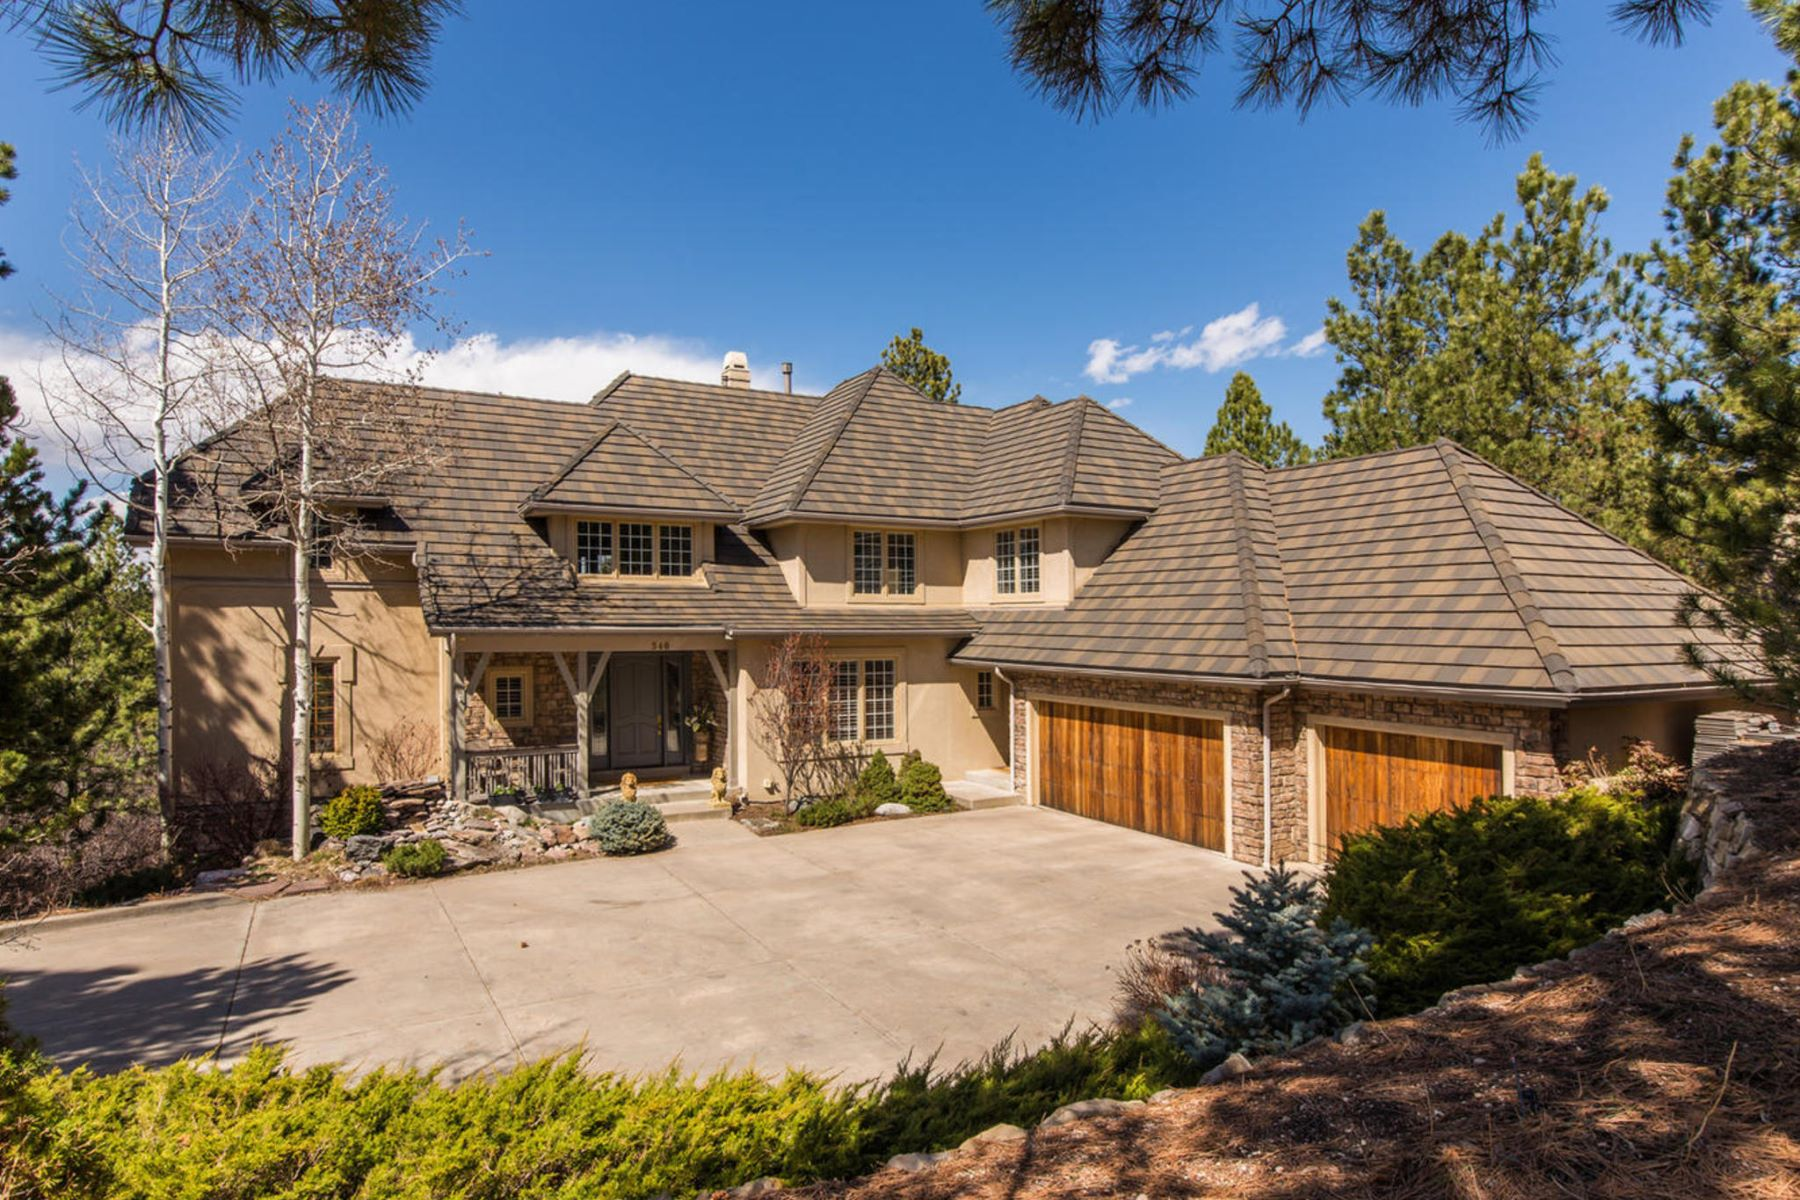 Single Family Home for Sale at 340 Tamasoa Pl Castle Pines Village, Castle Rock, Colorado, 80108 United States